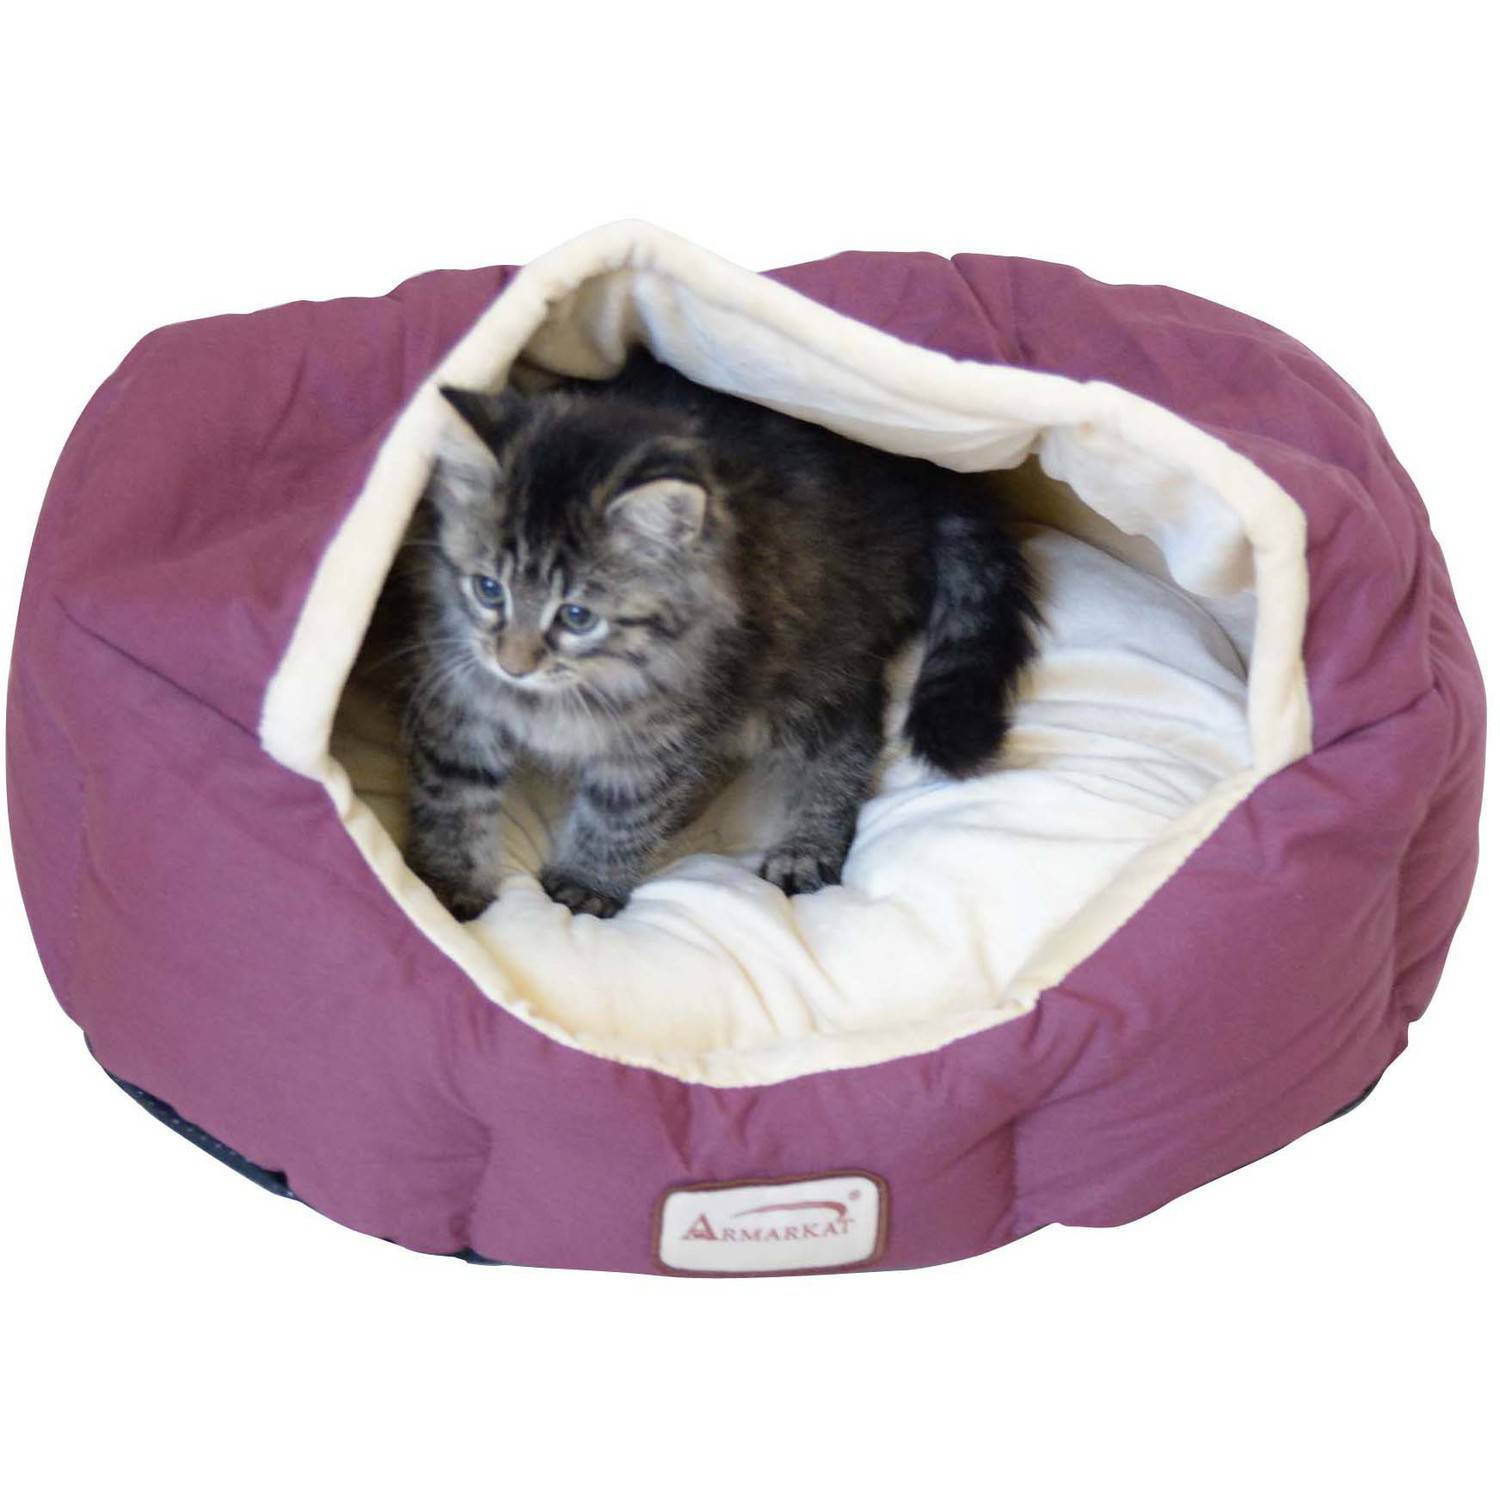 Armarkat Cat Bed 18-Inch Long C08HJH/MH, Beige